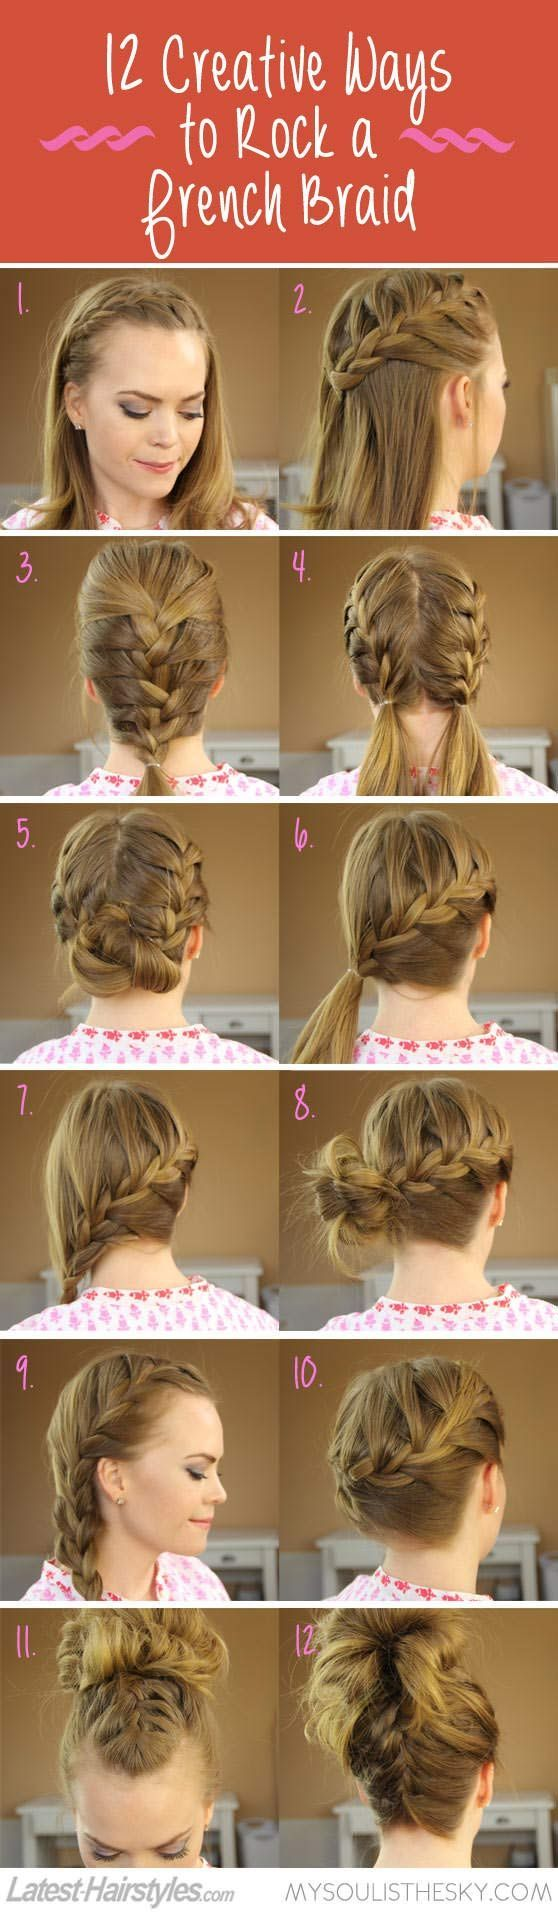 best hairstylestips images on pinterest hairstyle ideas hair